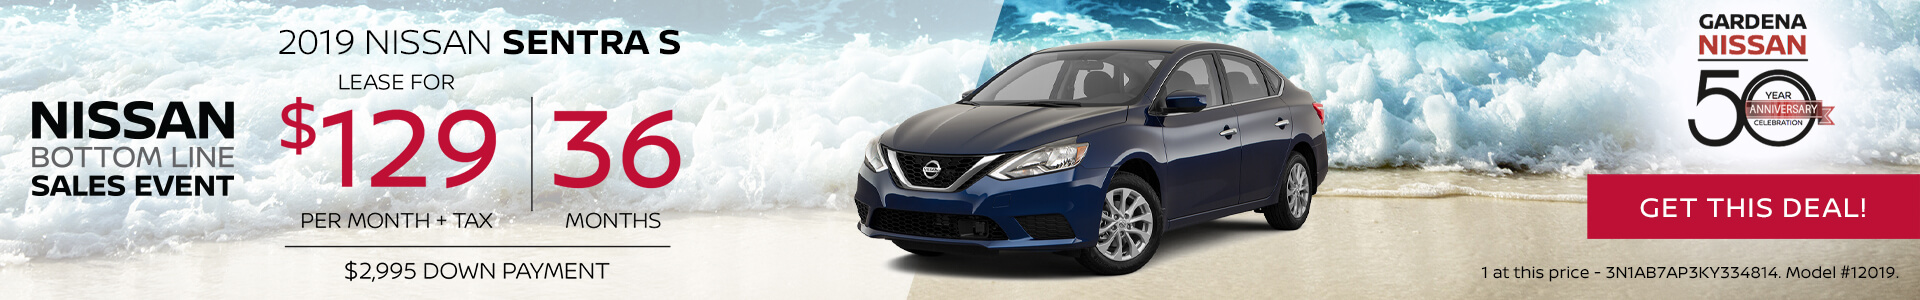 44 New Nissan Sentra in Stock Serving Torrance, Long Beach and Los